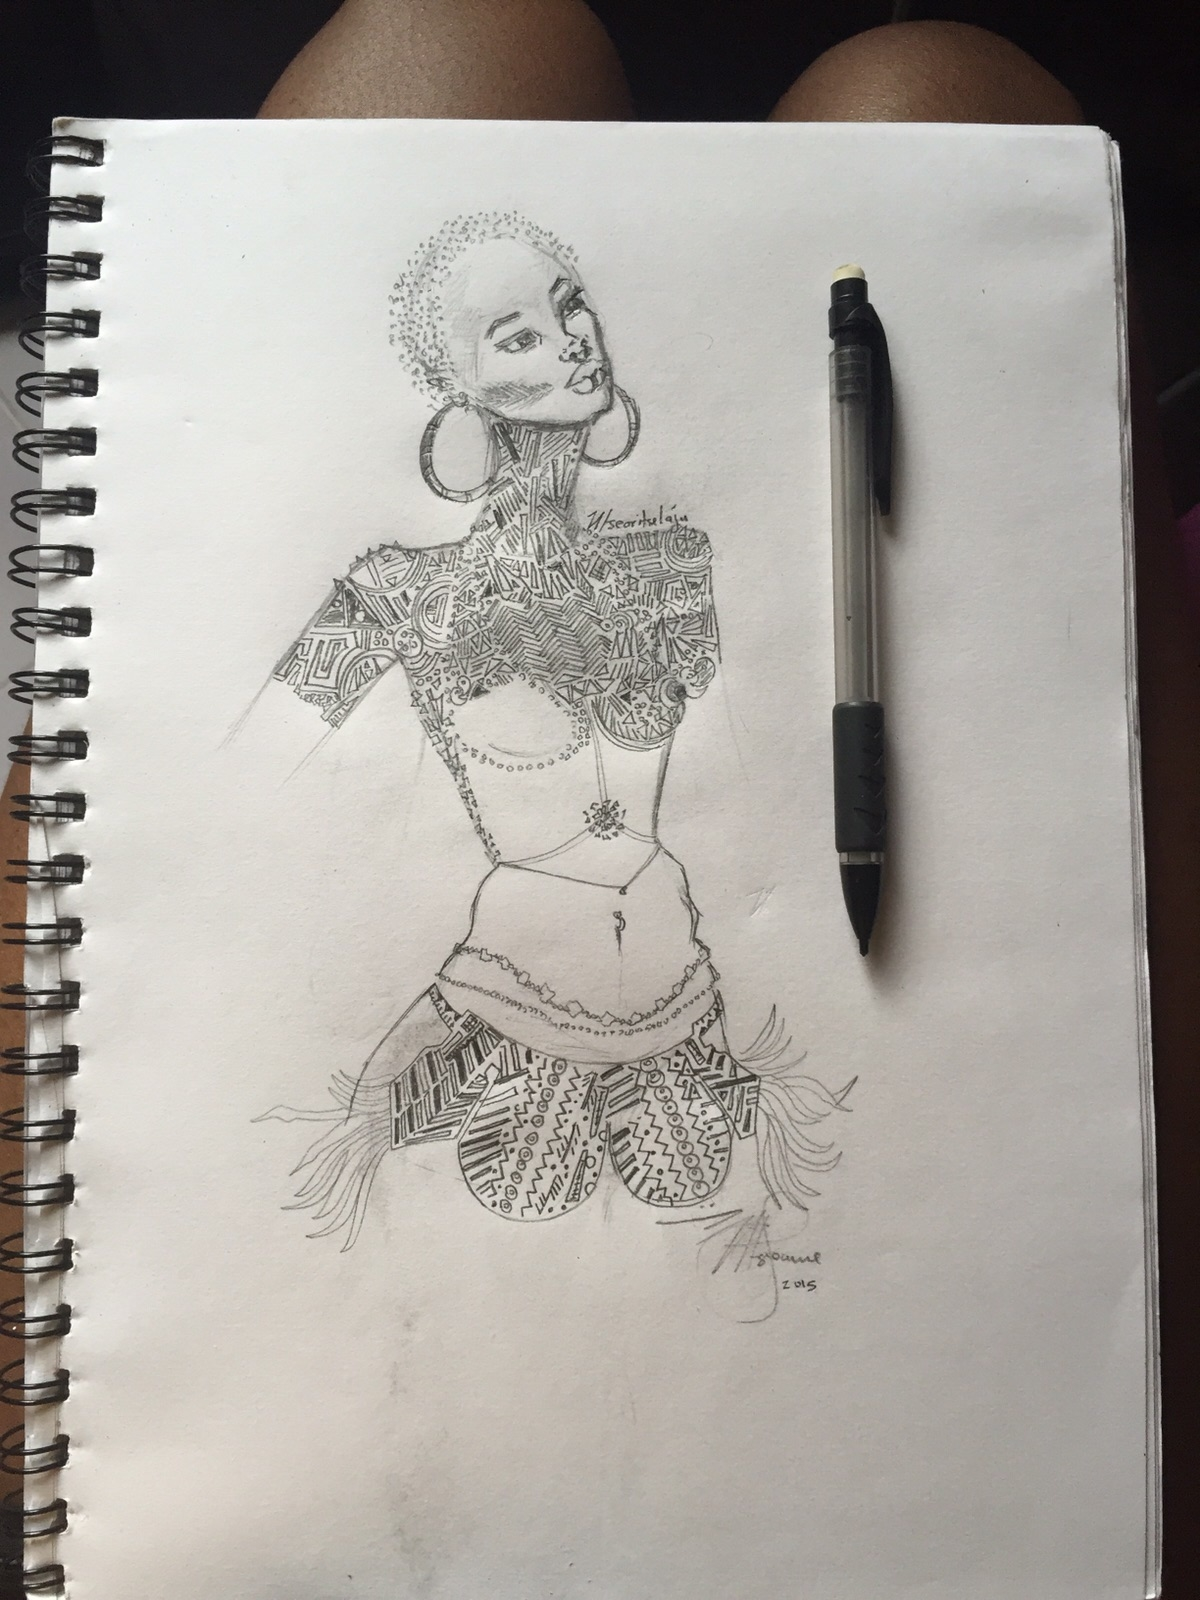 I am in love with this sketch